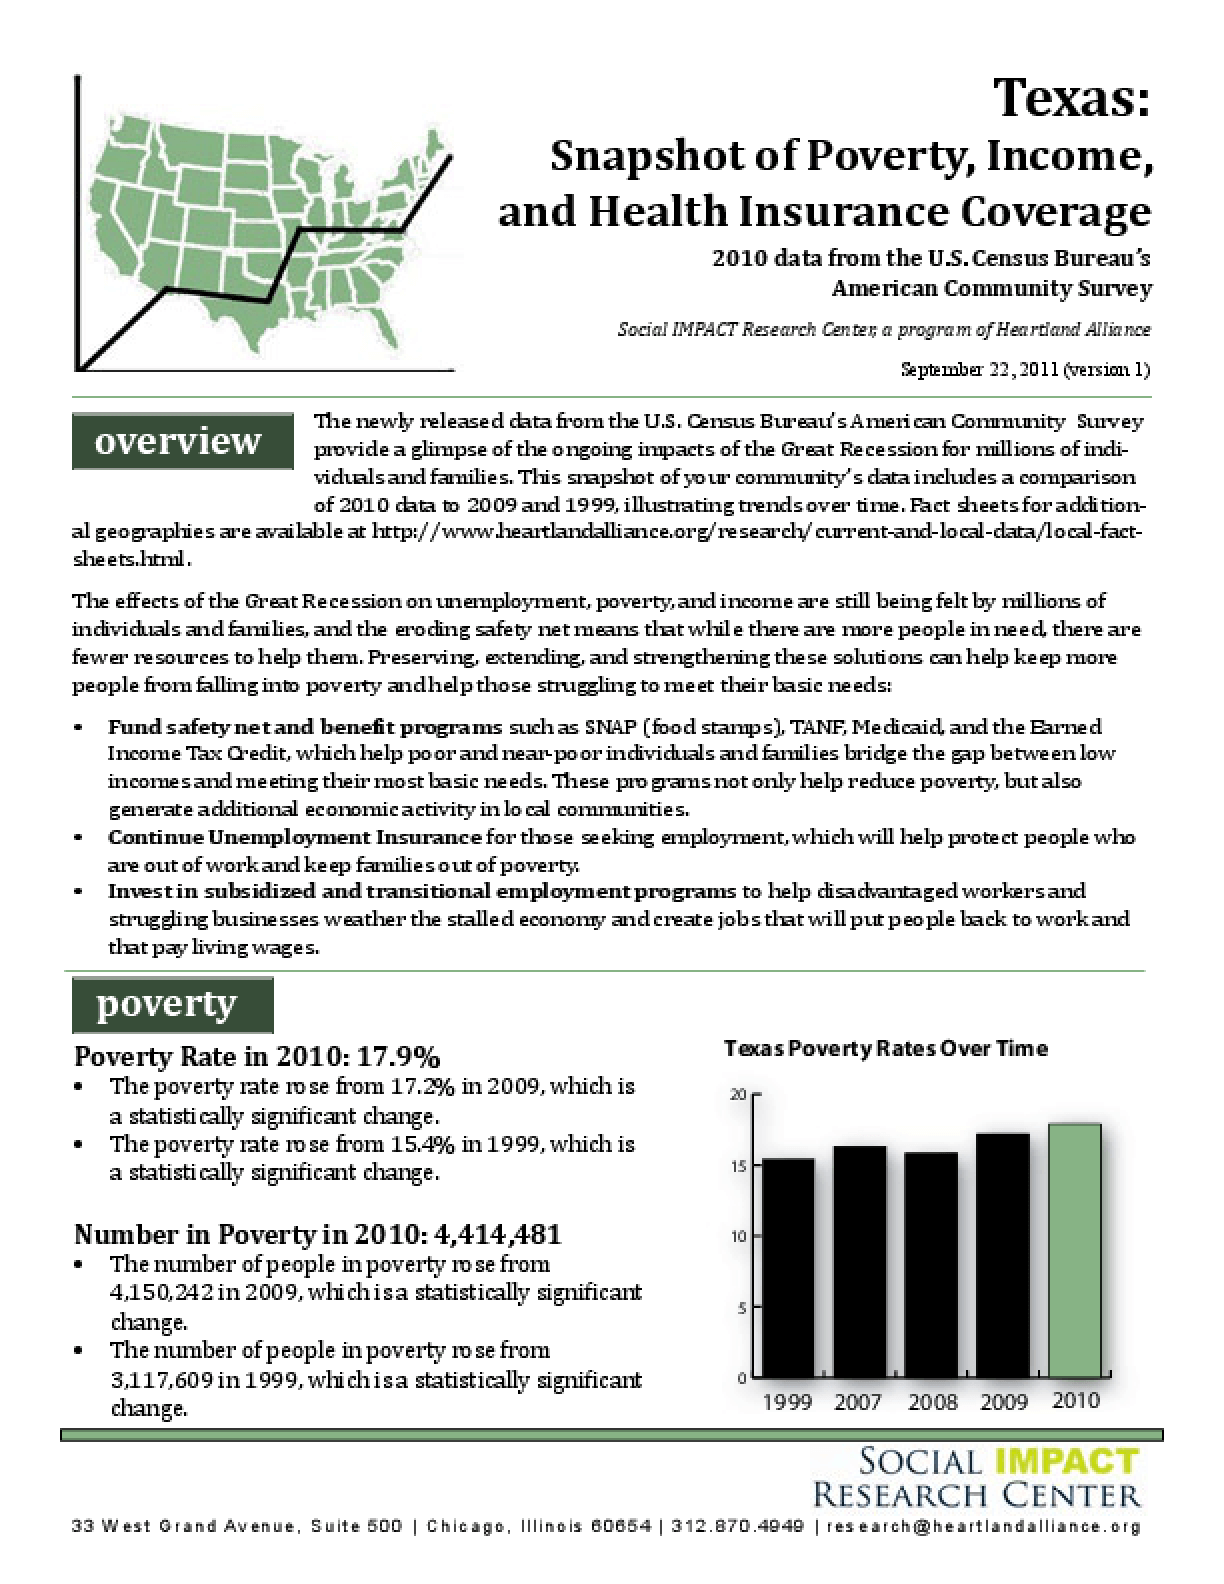 Texas: Snapshot of Poverty, Income, and Health Insurance Coverage